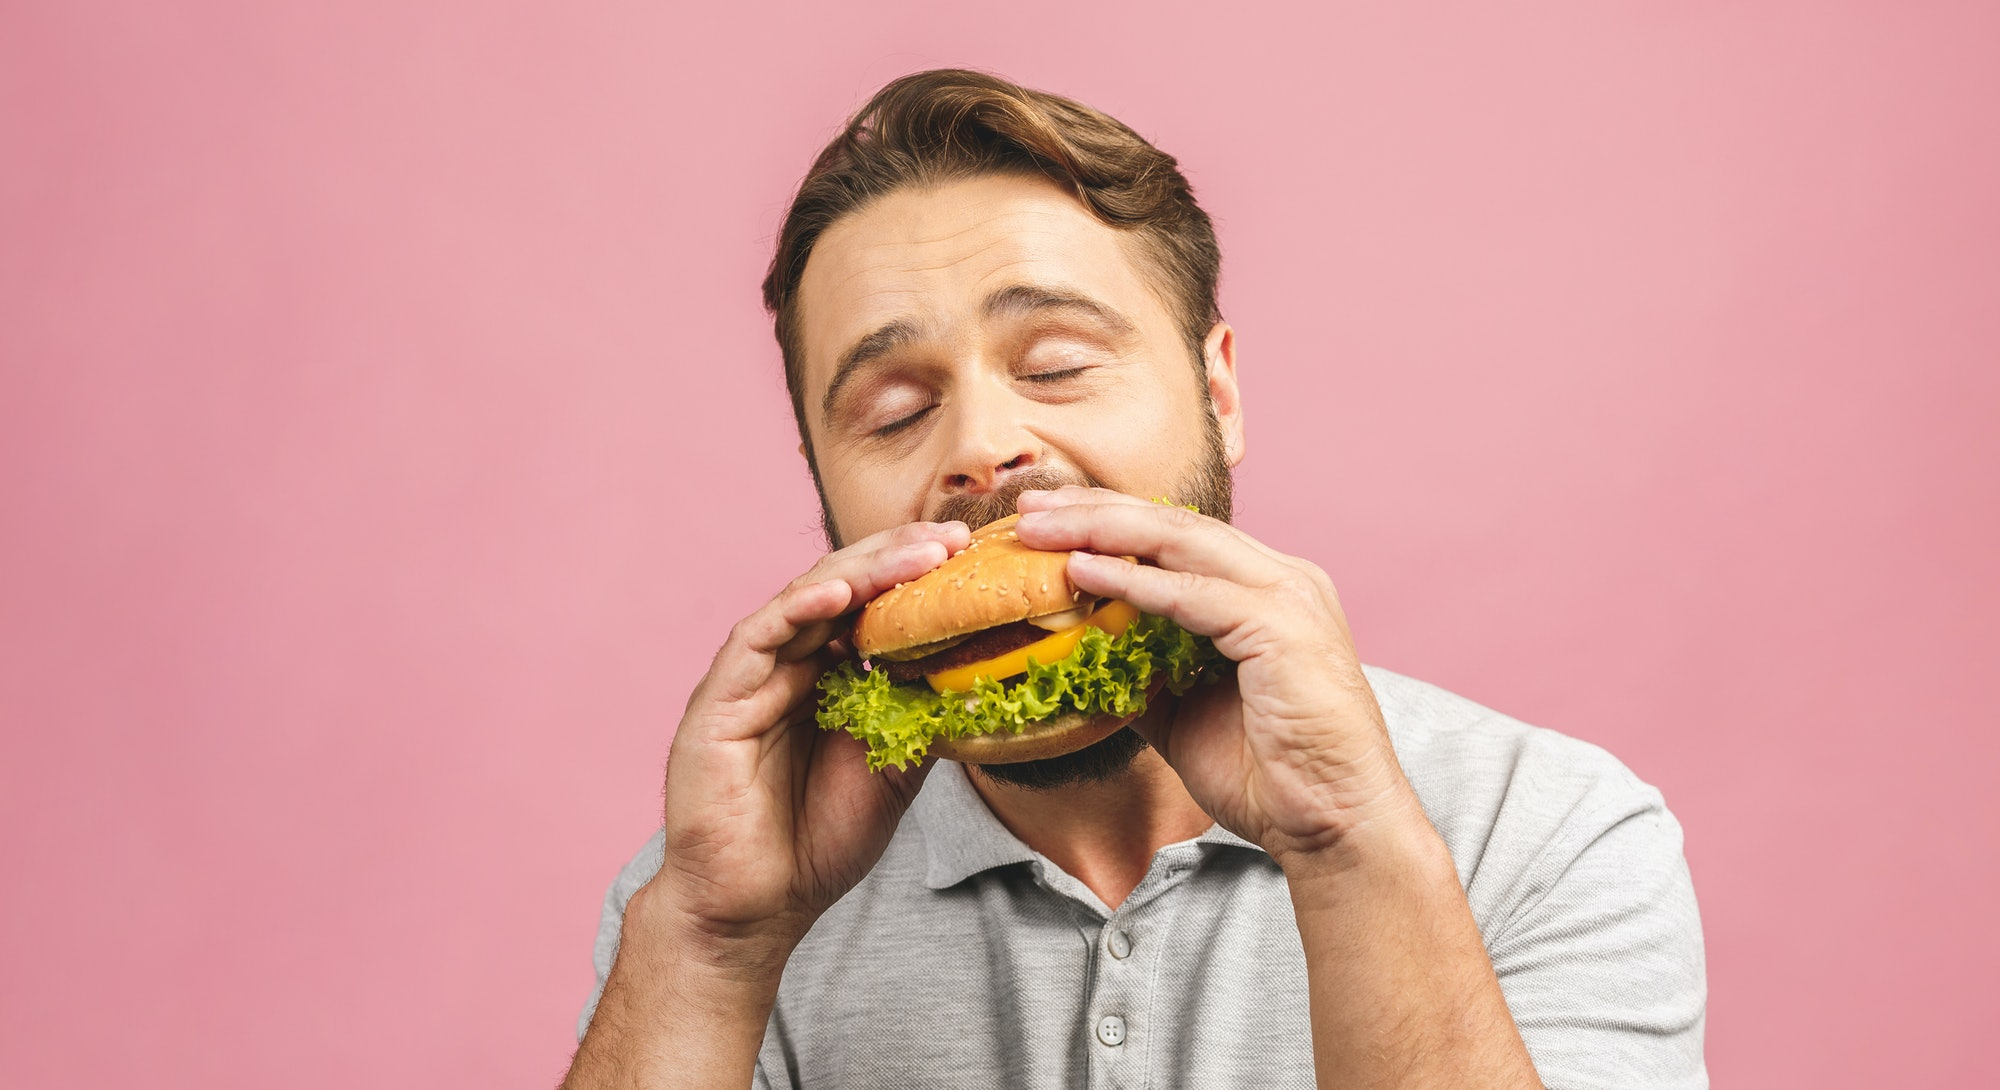 Young man holding a piece of hamburger. Bearded gyu eats fast food. Burger is not helpful food. Very...